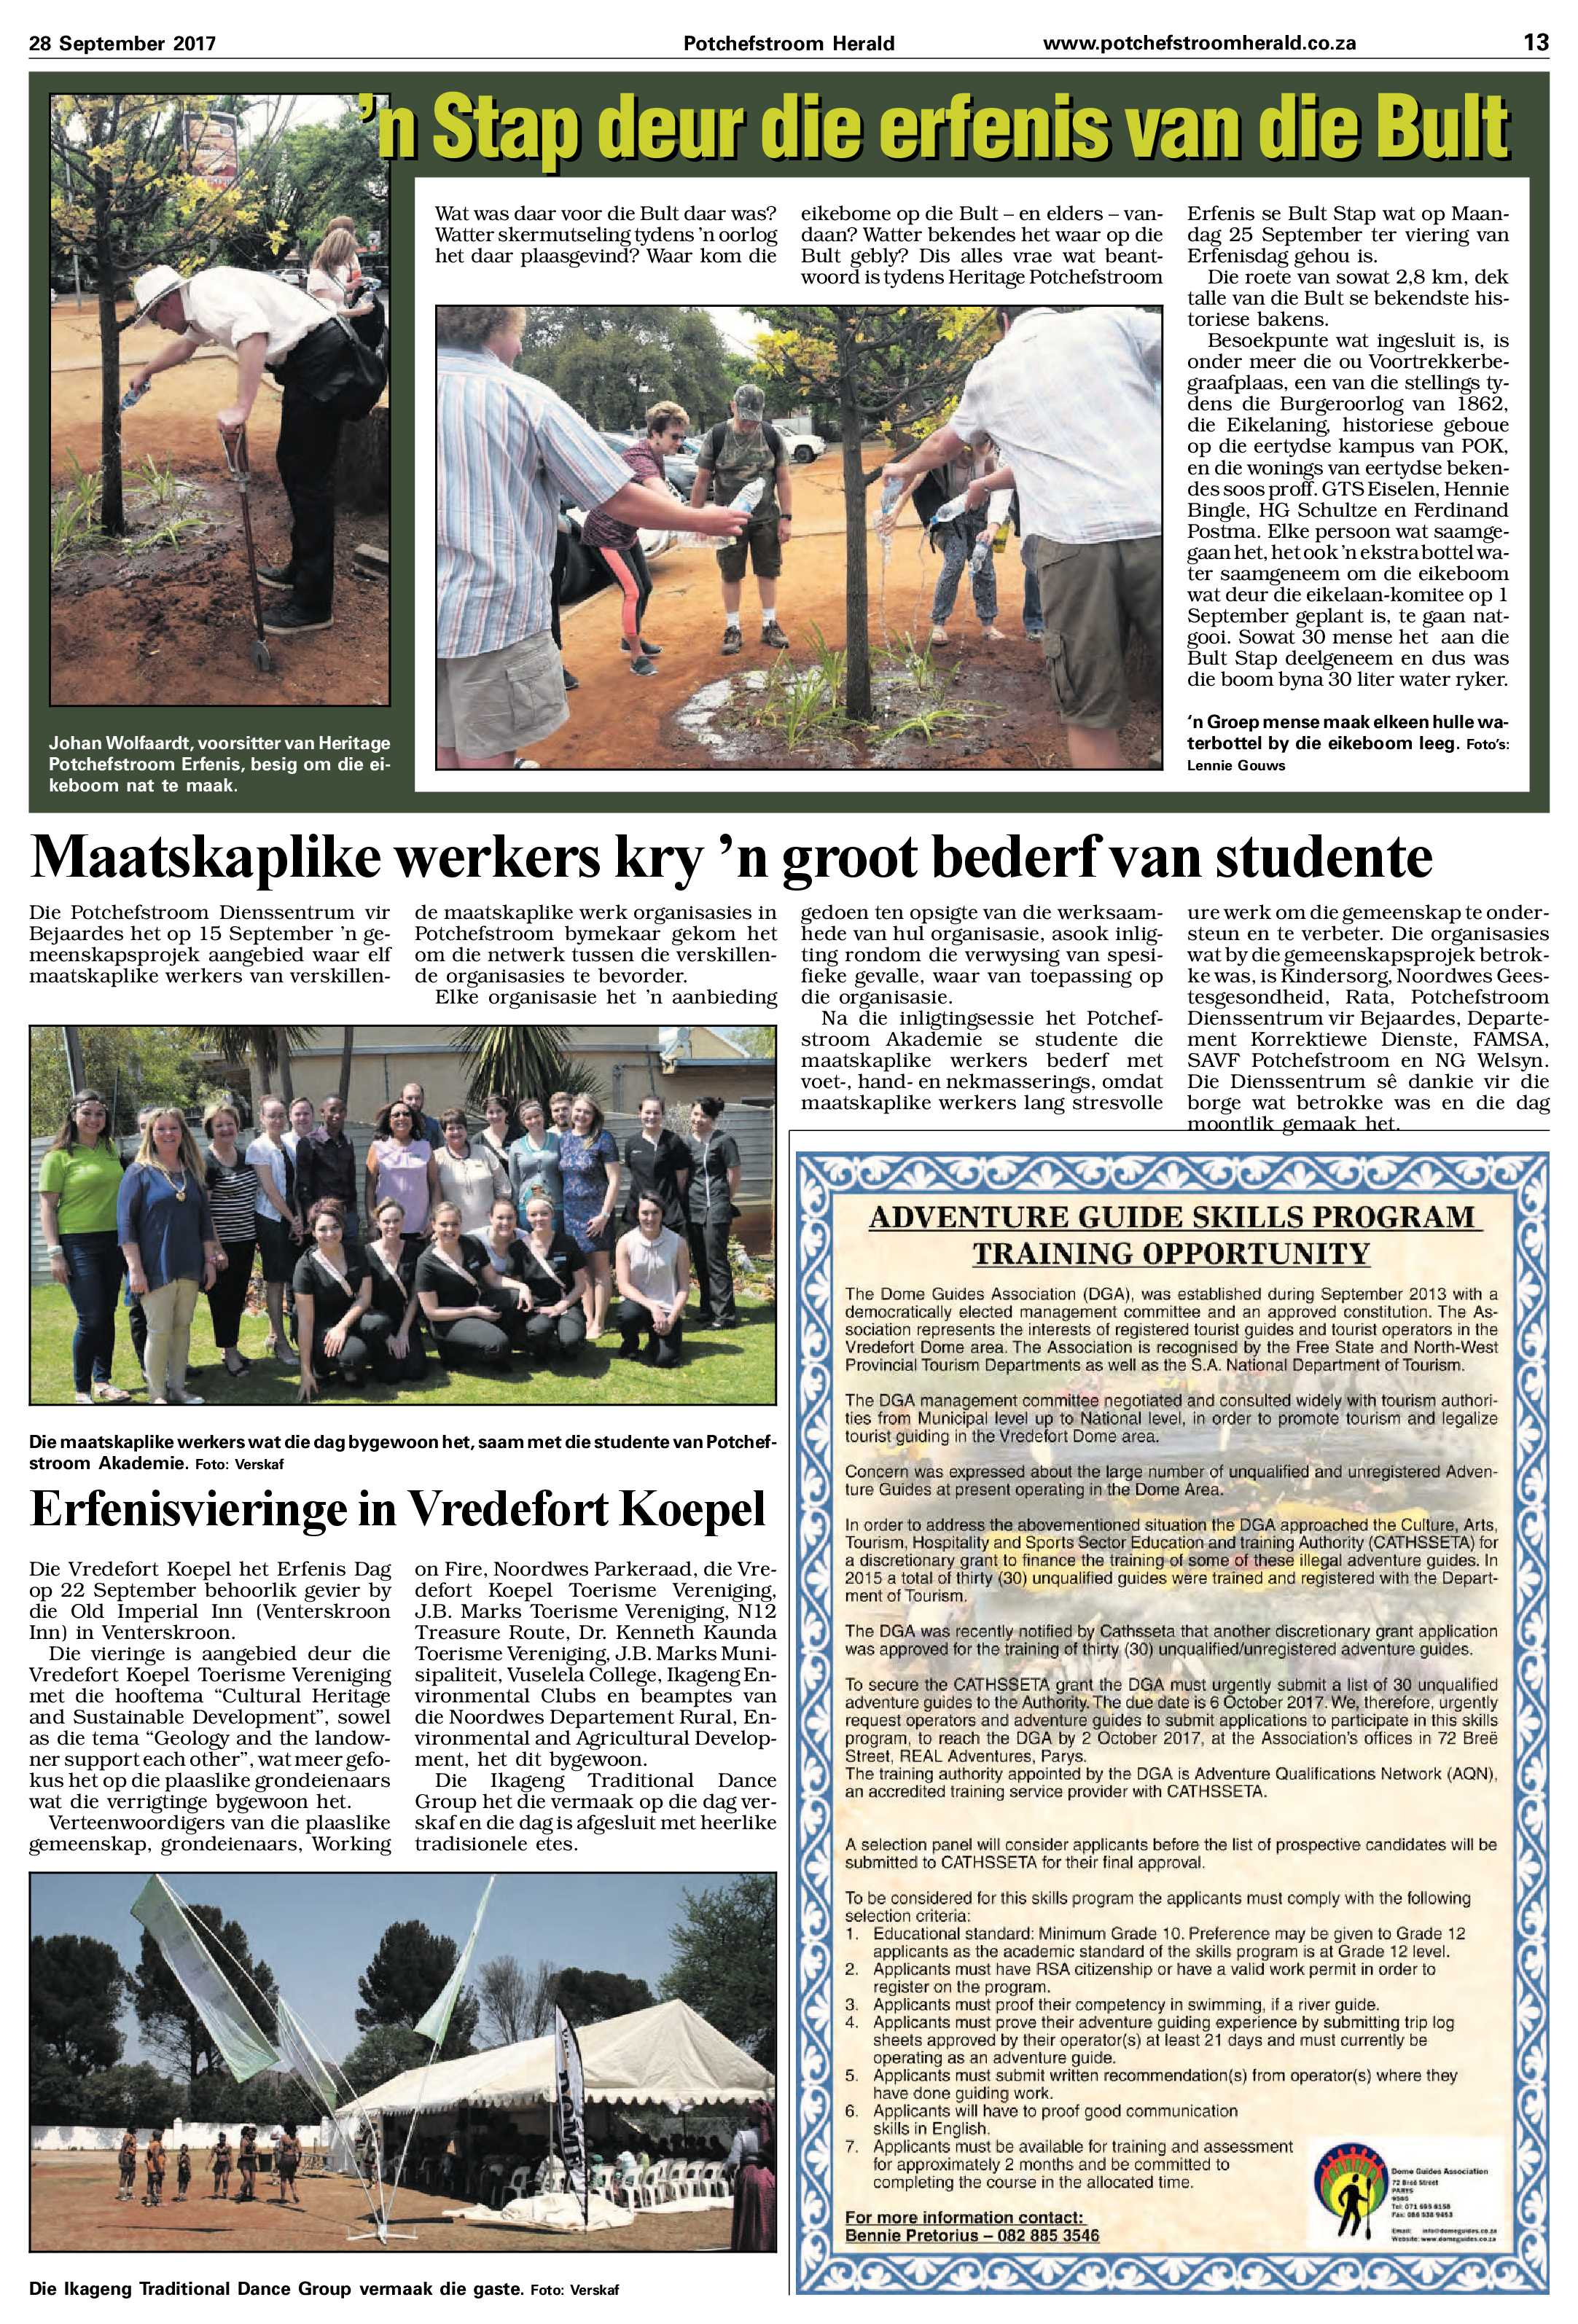 28-september-2017-epapers-page-13